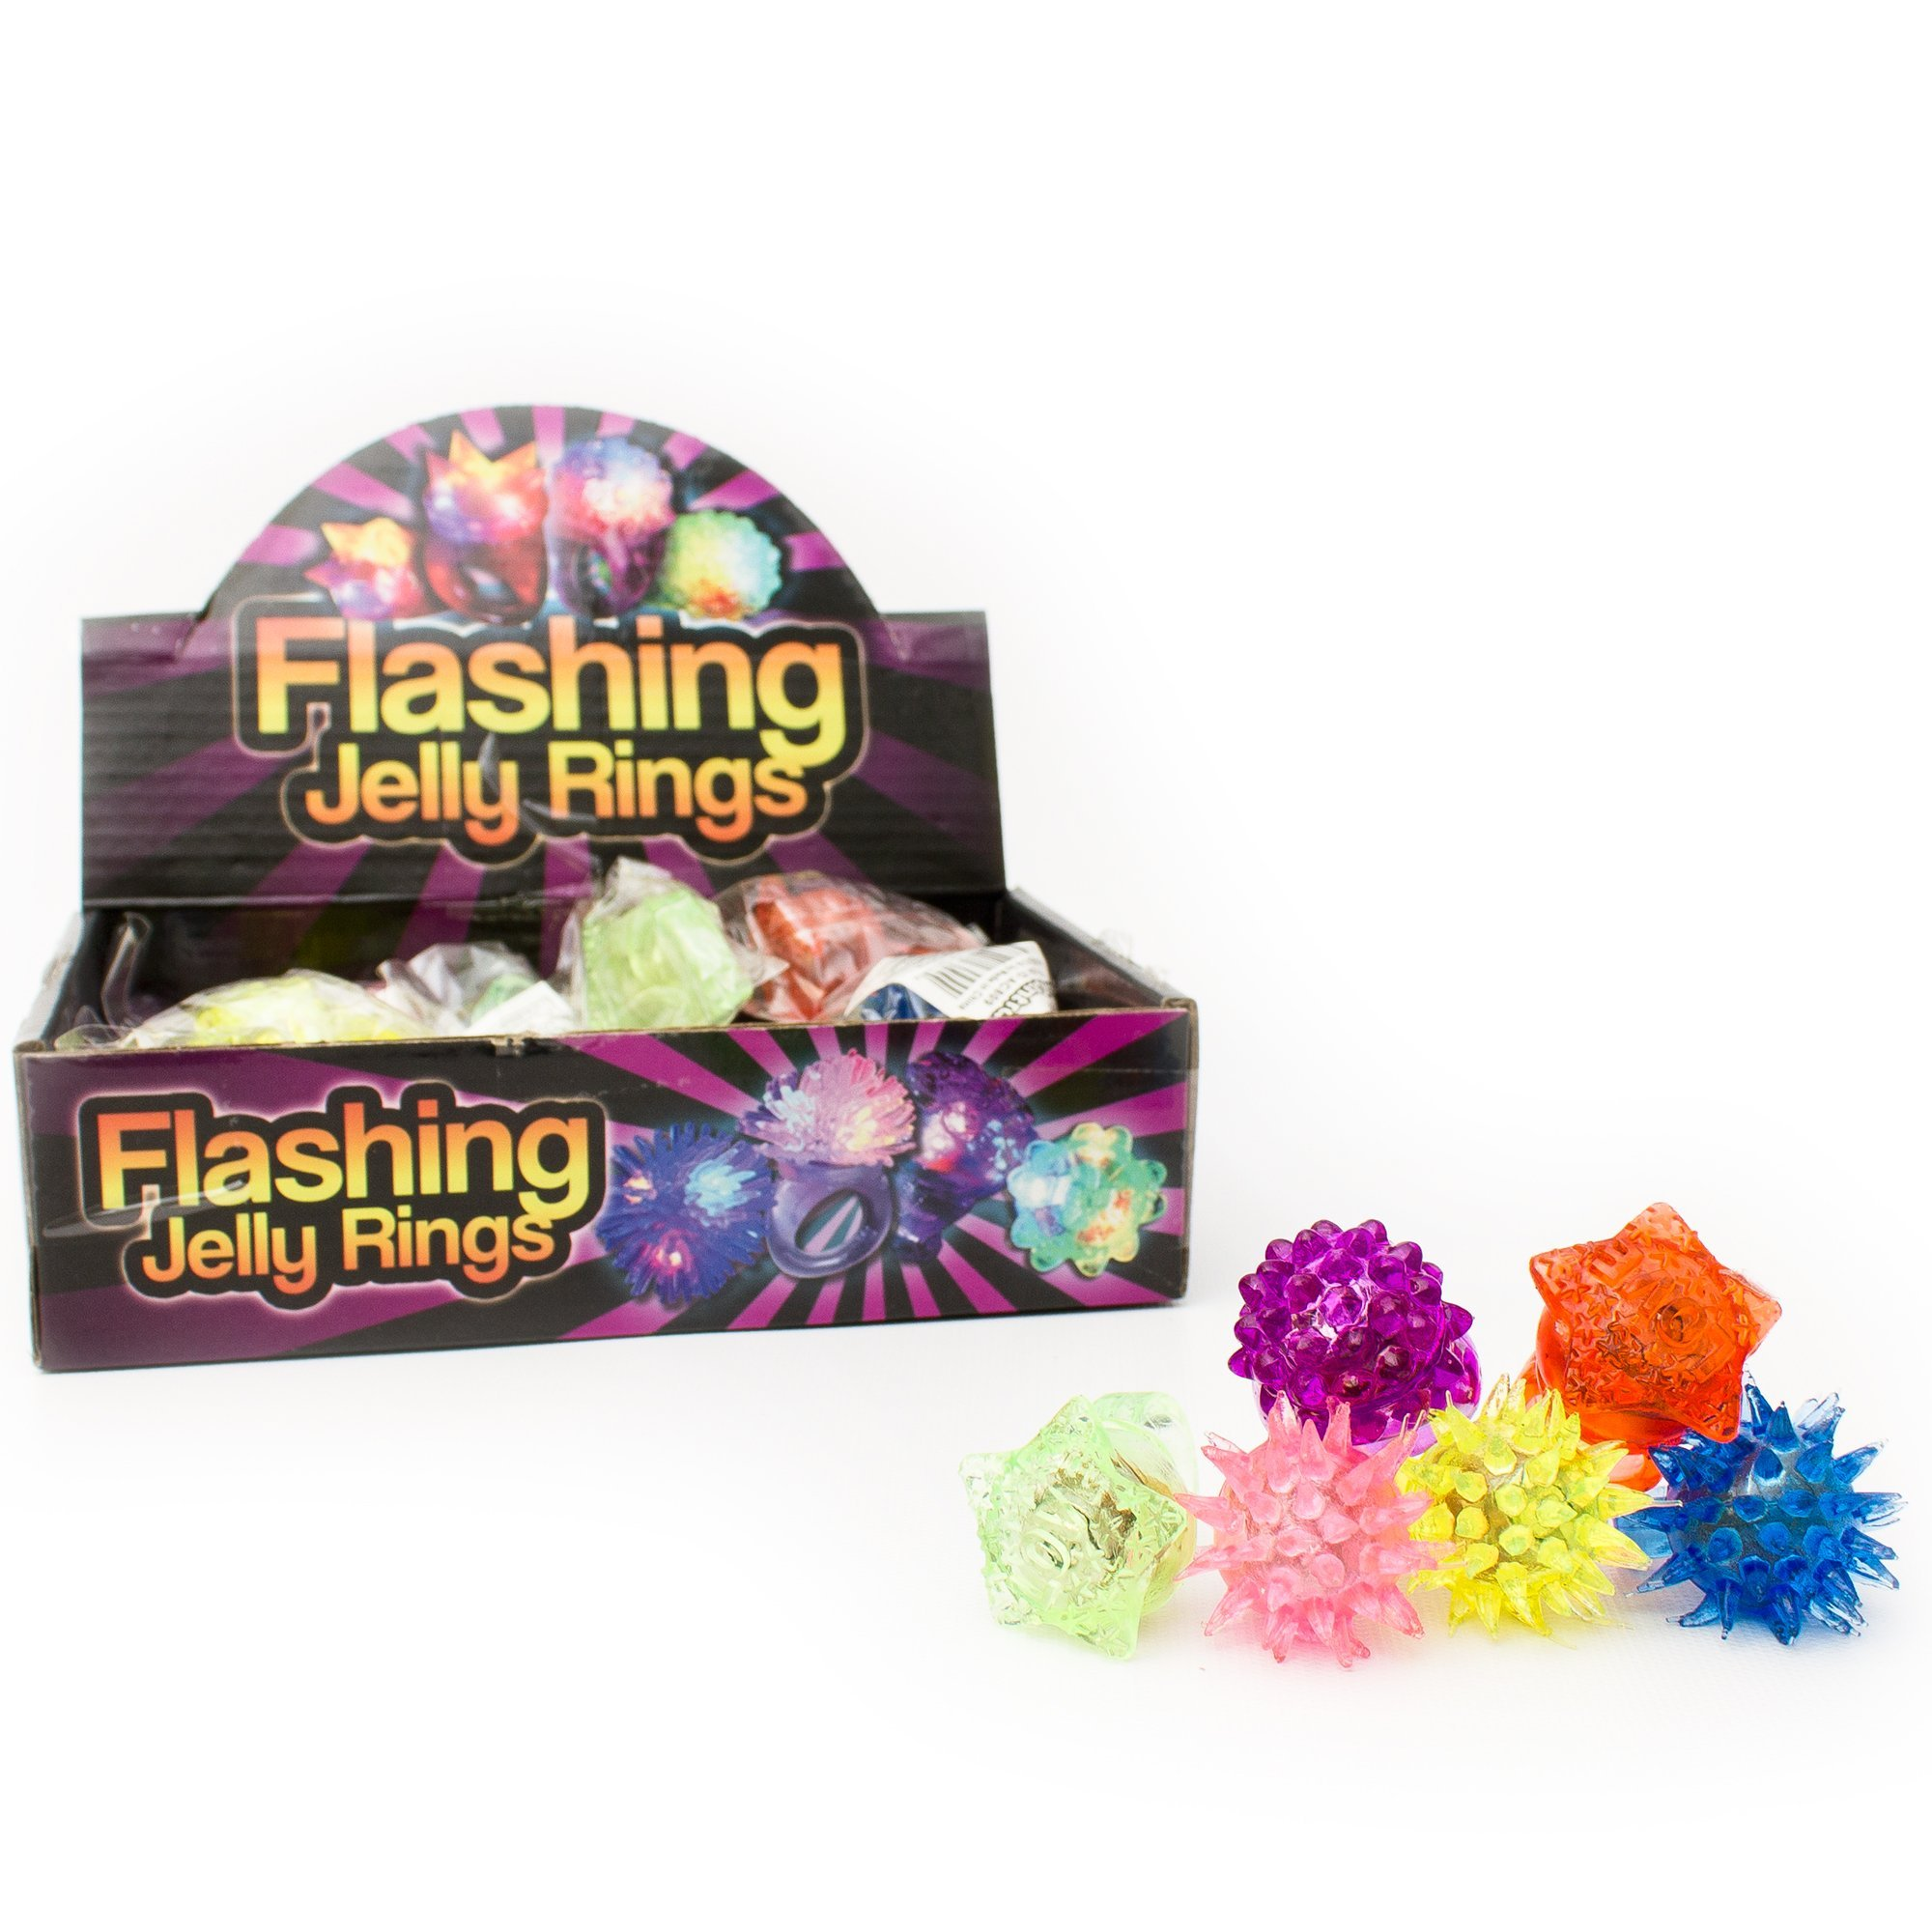 Fun Central AC809 96 Counts LED Light up Flashing, Blinky Jelly Rings,Assorted Styles and Colors - Kids Party Supply and Toys Birthday Party Favors, Giveaways, Goodie Bag Fillers, Gifts, Prizes by Fun Central (Image #5)